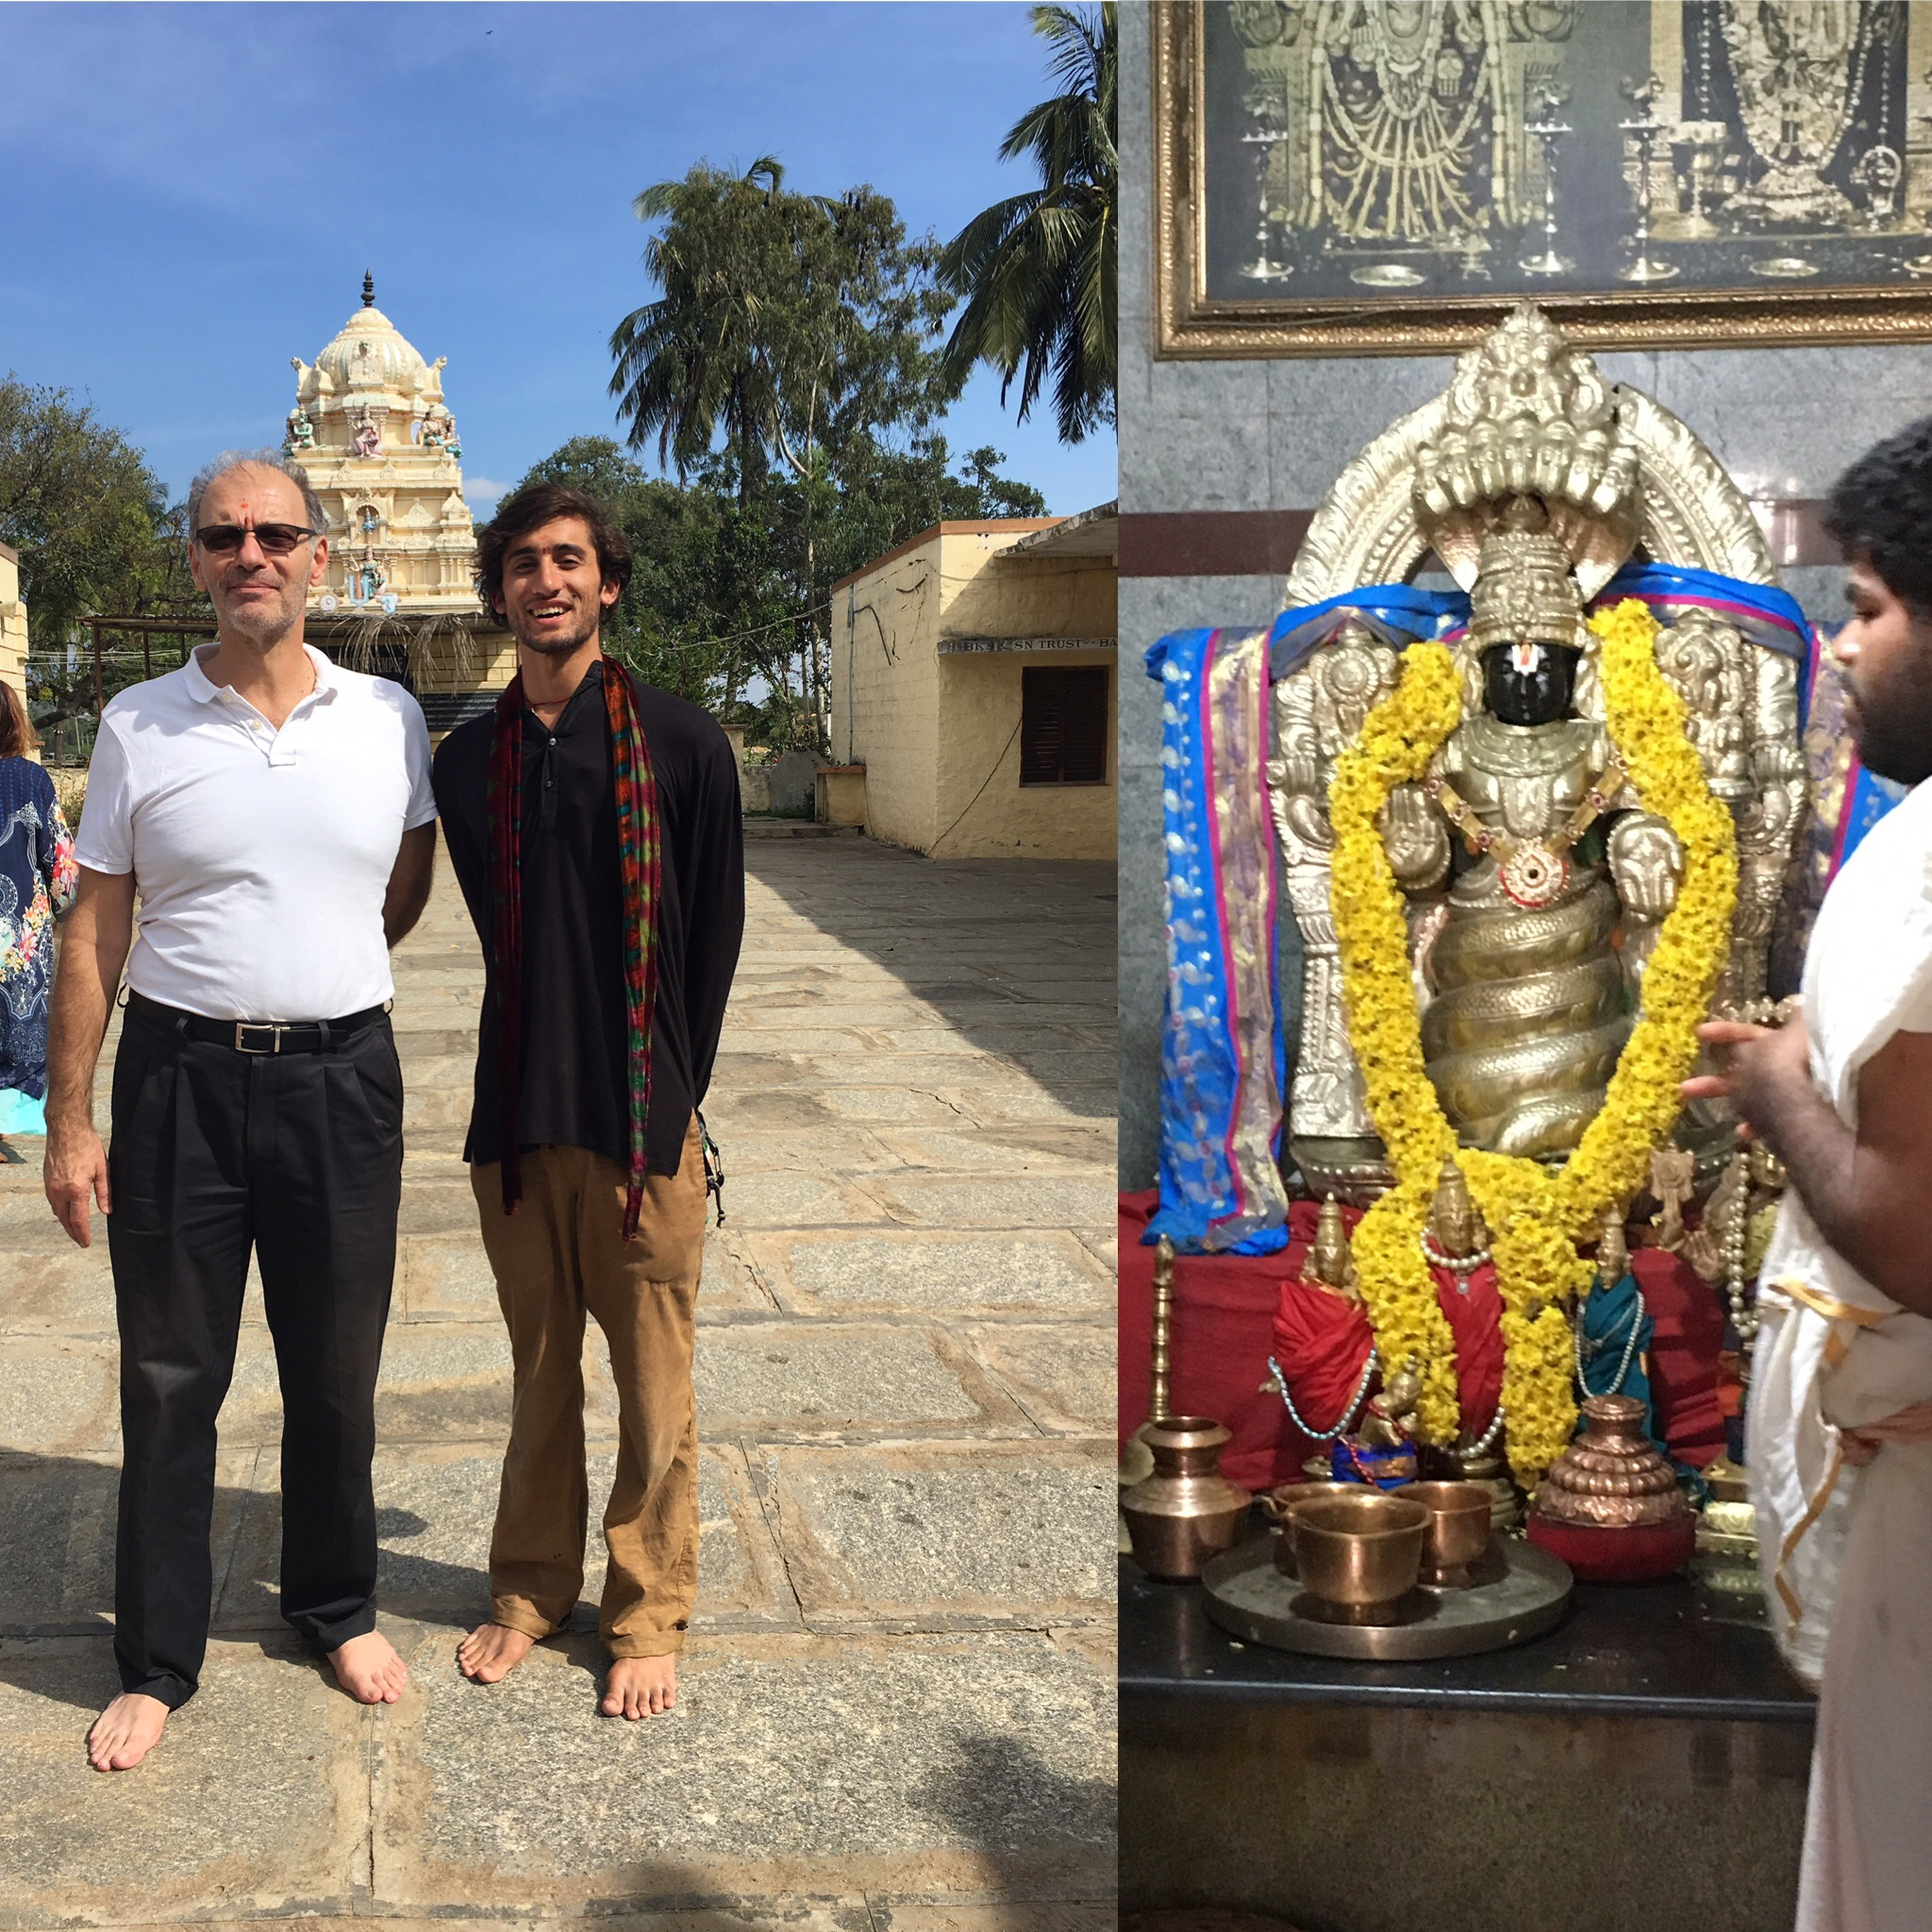 In front of the worlds first Patanjali temple• commissioned by BKS Iyengar with Mr. Manouso